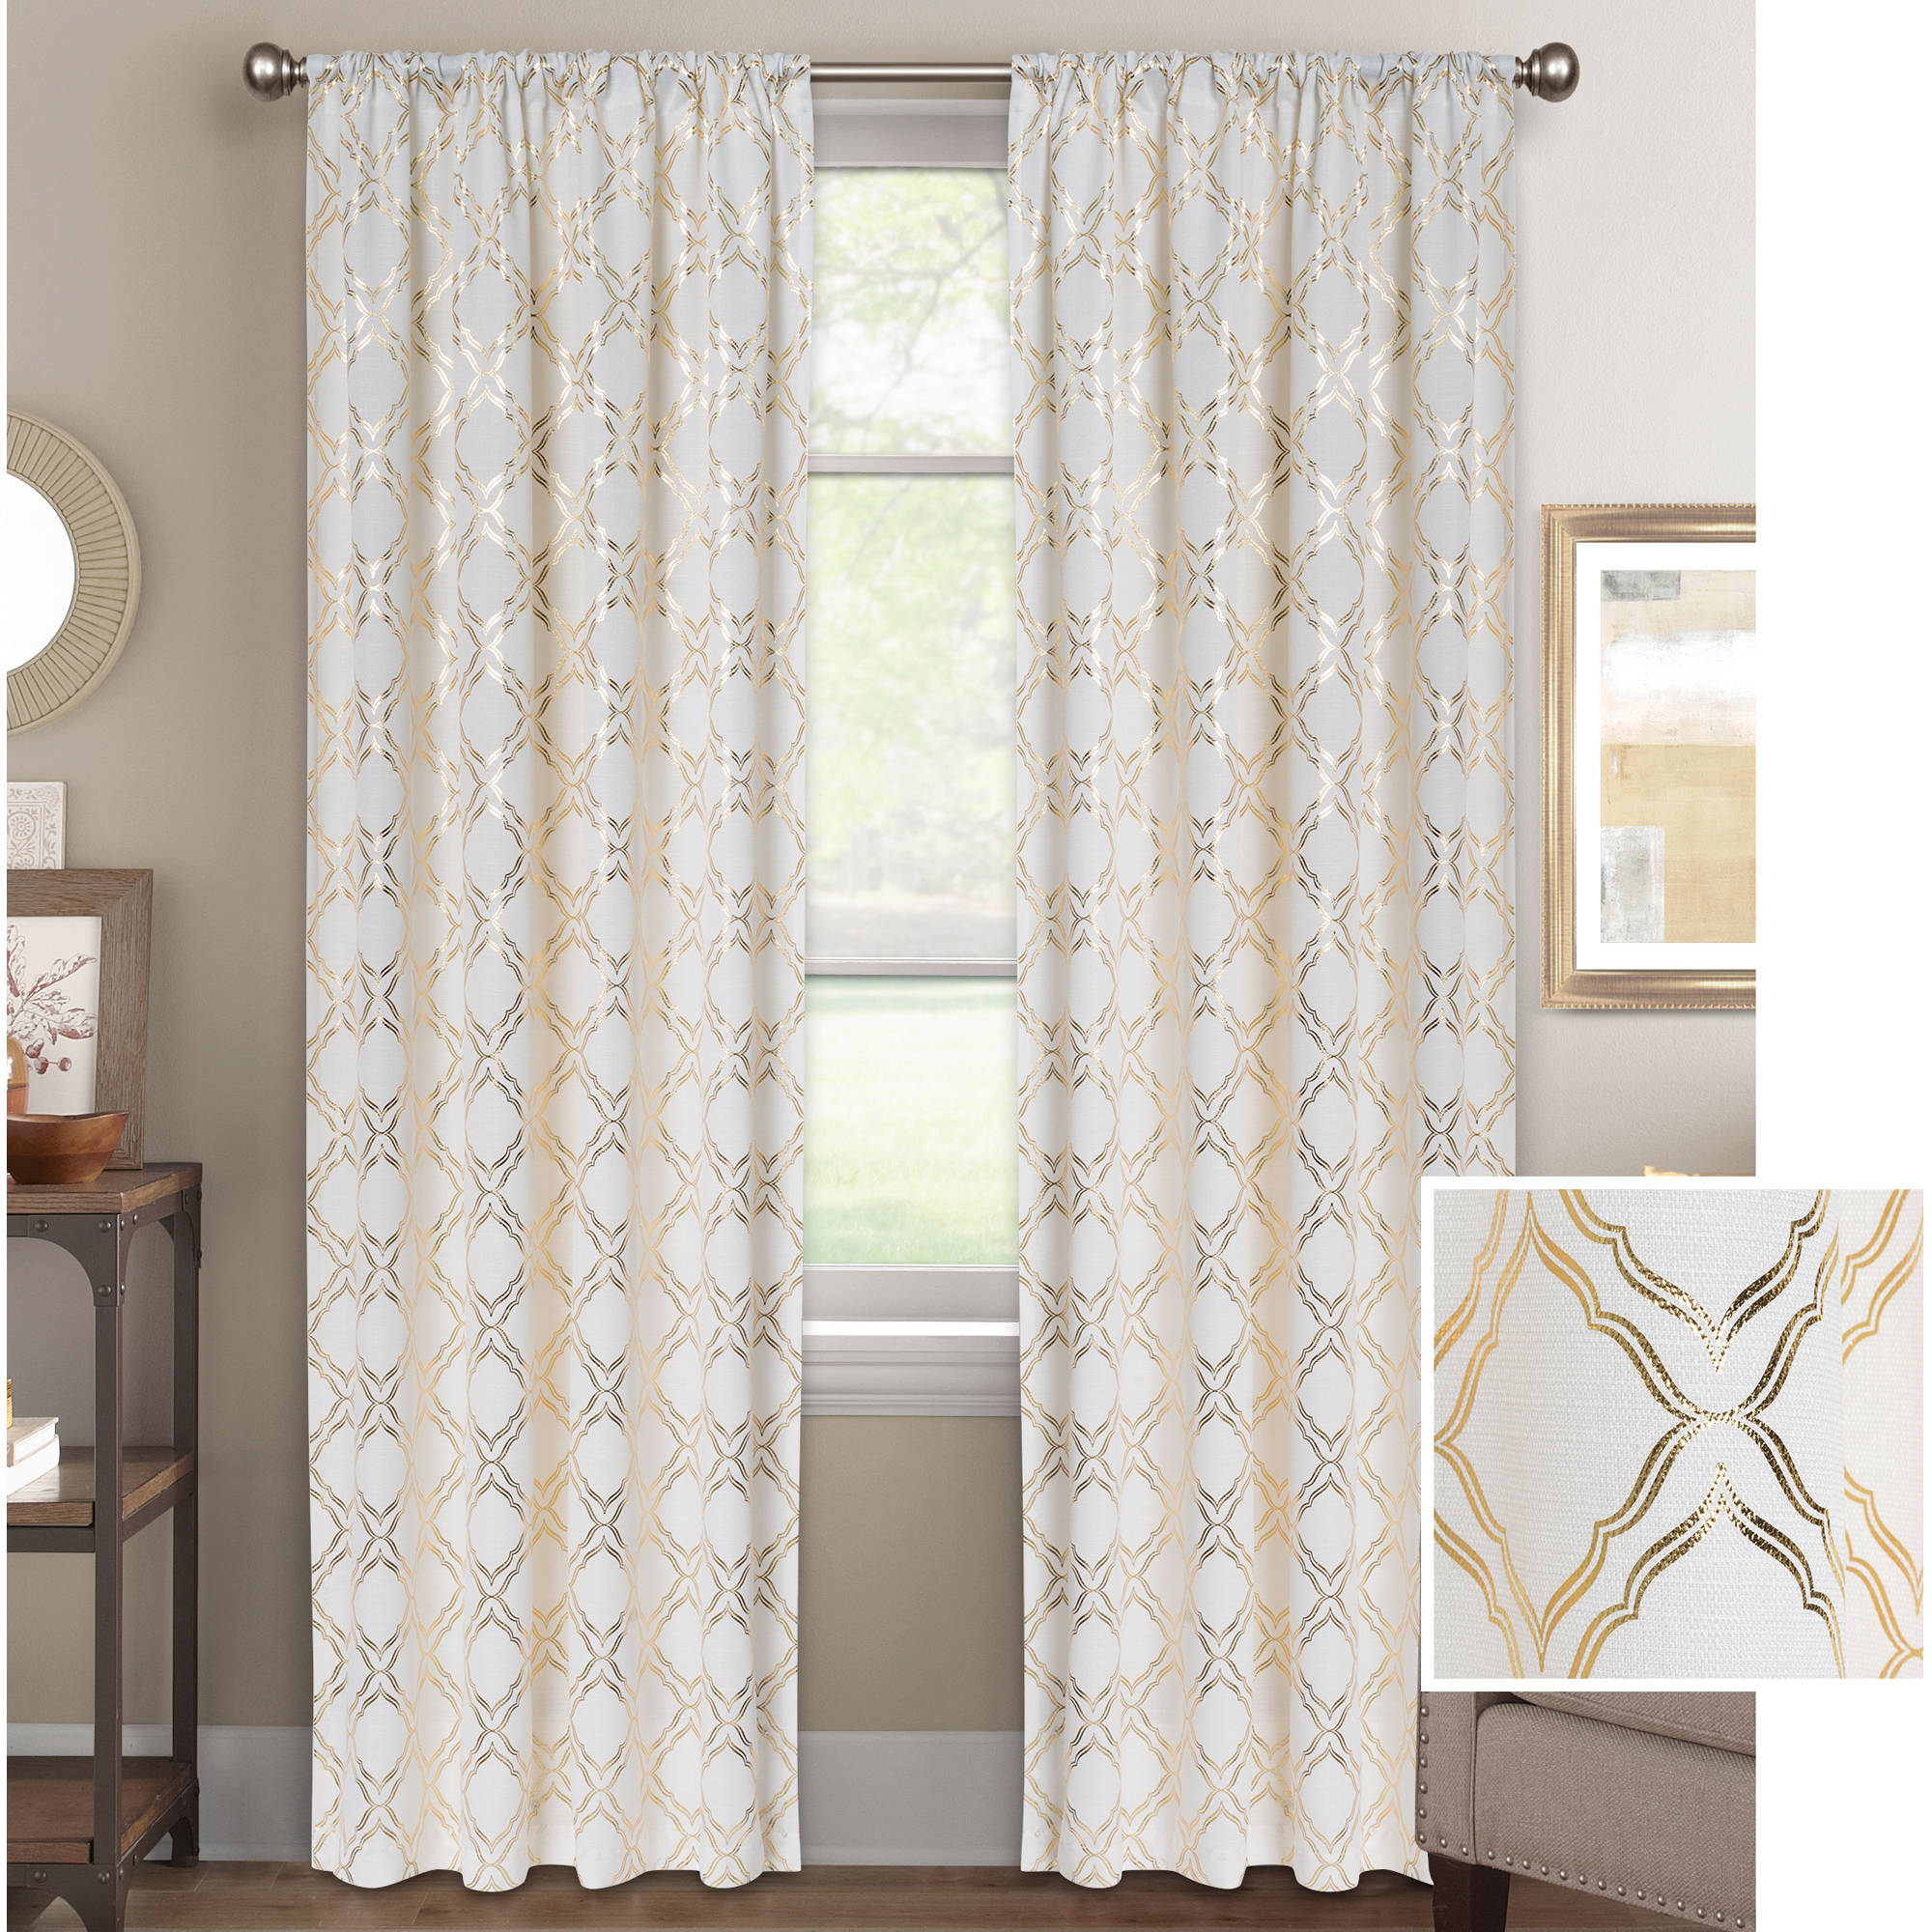 Better Homes & Gardens Metallic Foil Trellis Curtain Panel With Regard To Grey Printed Curtain Panels (View 17 of 20)